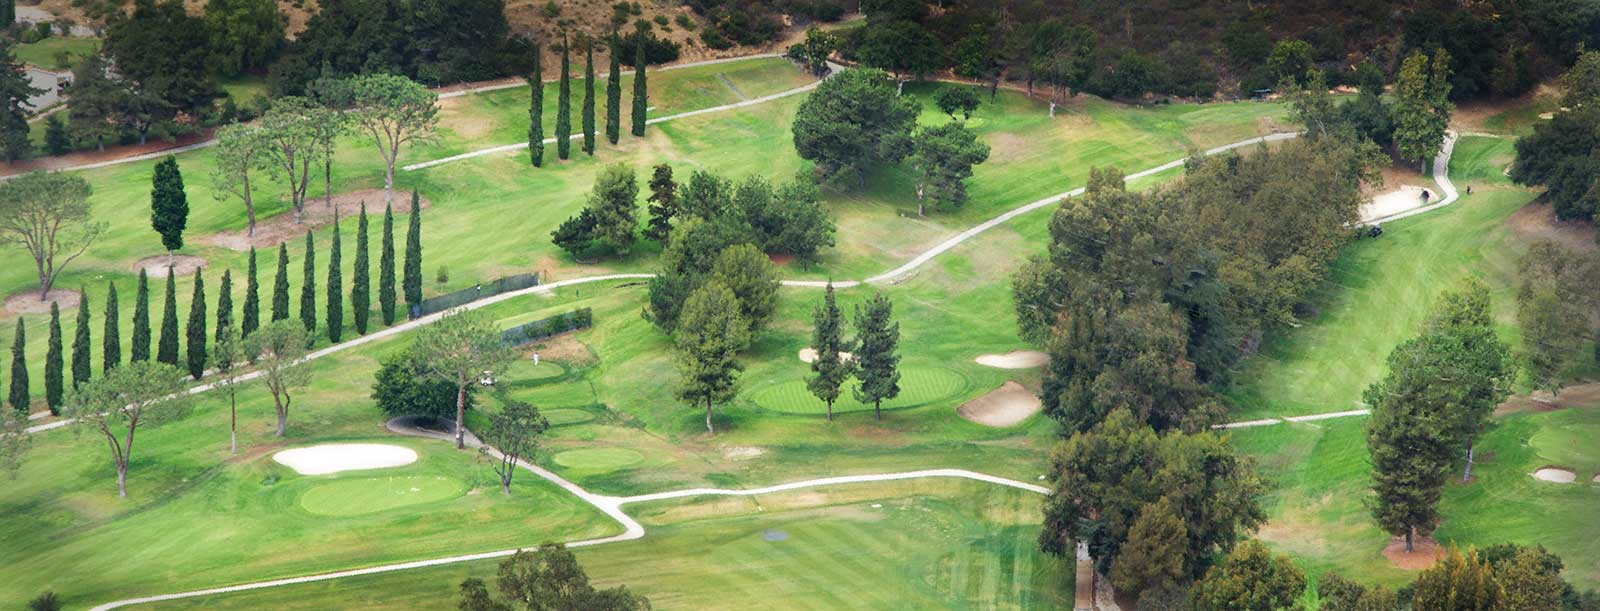 Chevy Chase Country Club, Glendale, CA